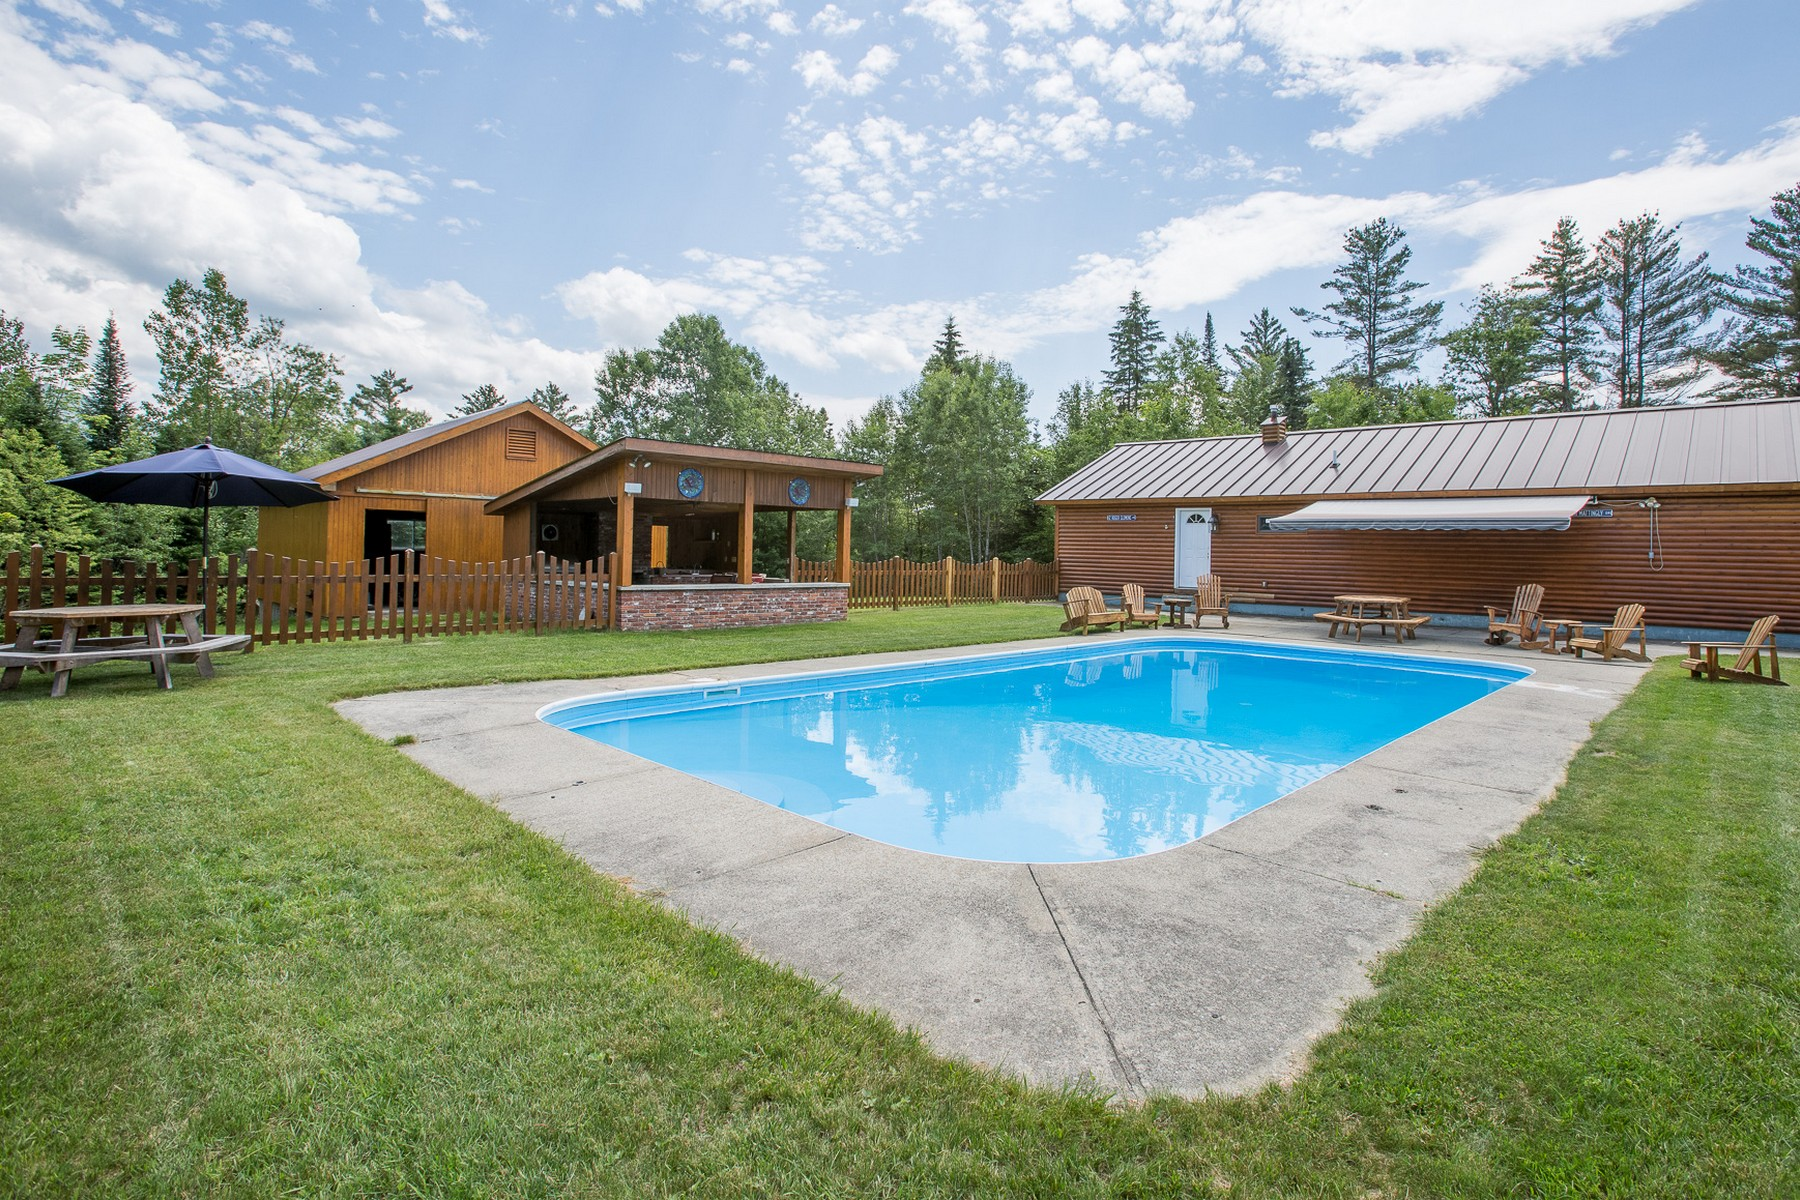 Single Family Home for Sale at Kingdom Chalets 60 Wafers Lanee. Darling Hill Rd Burke, Vermont, 05832 United States